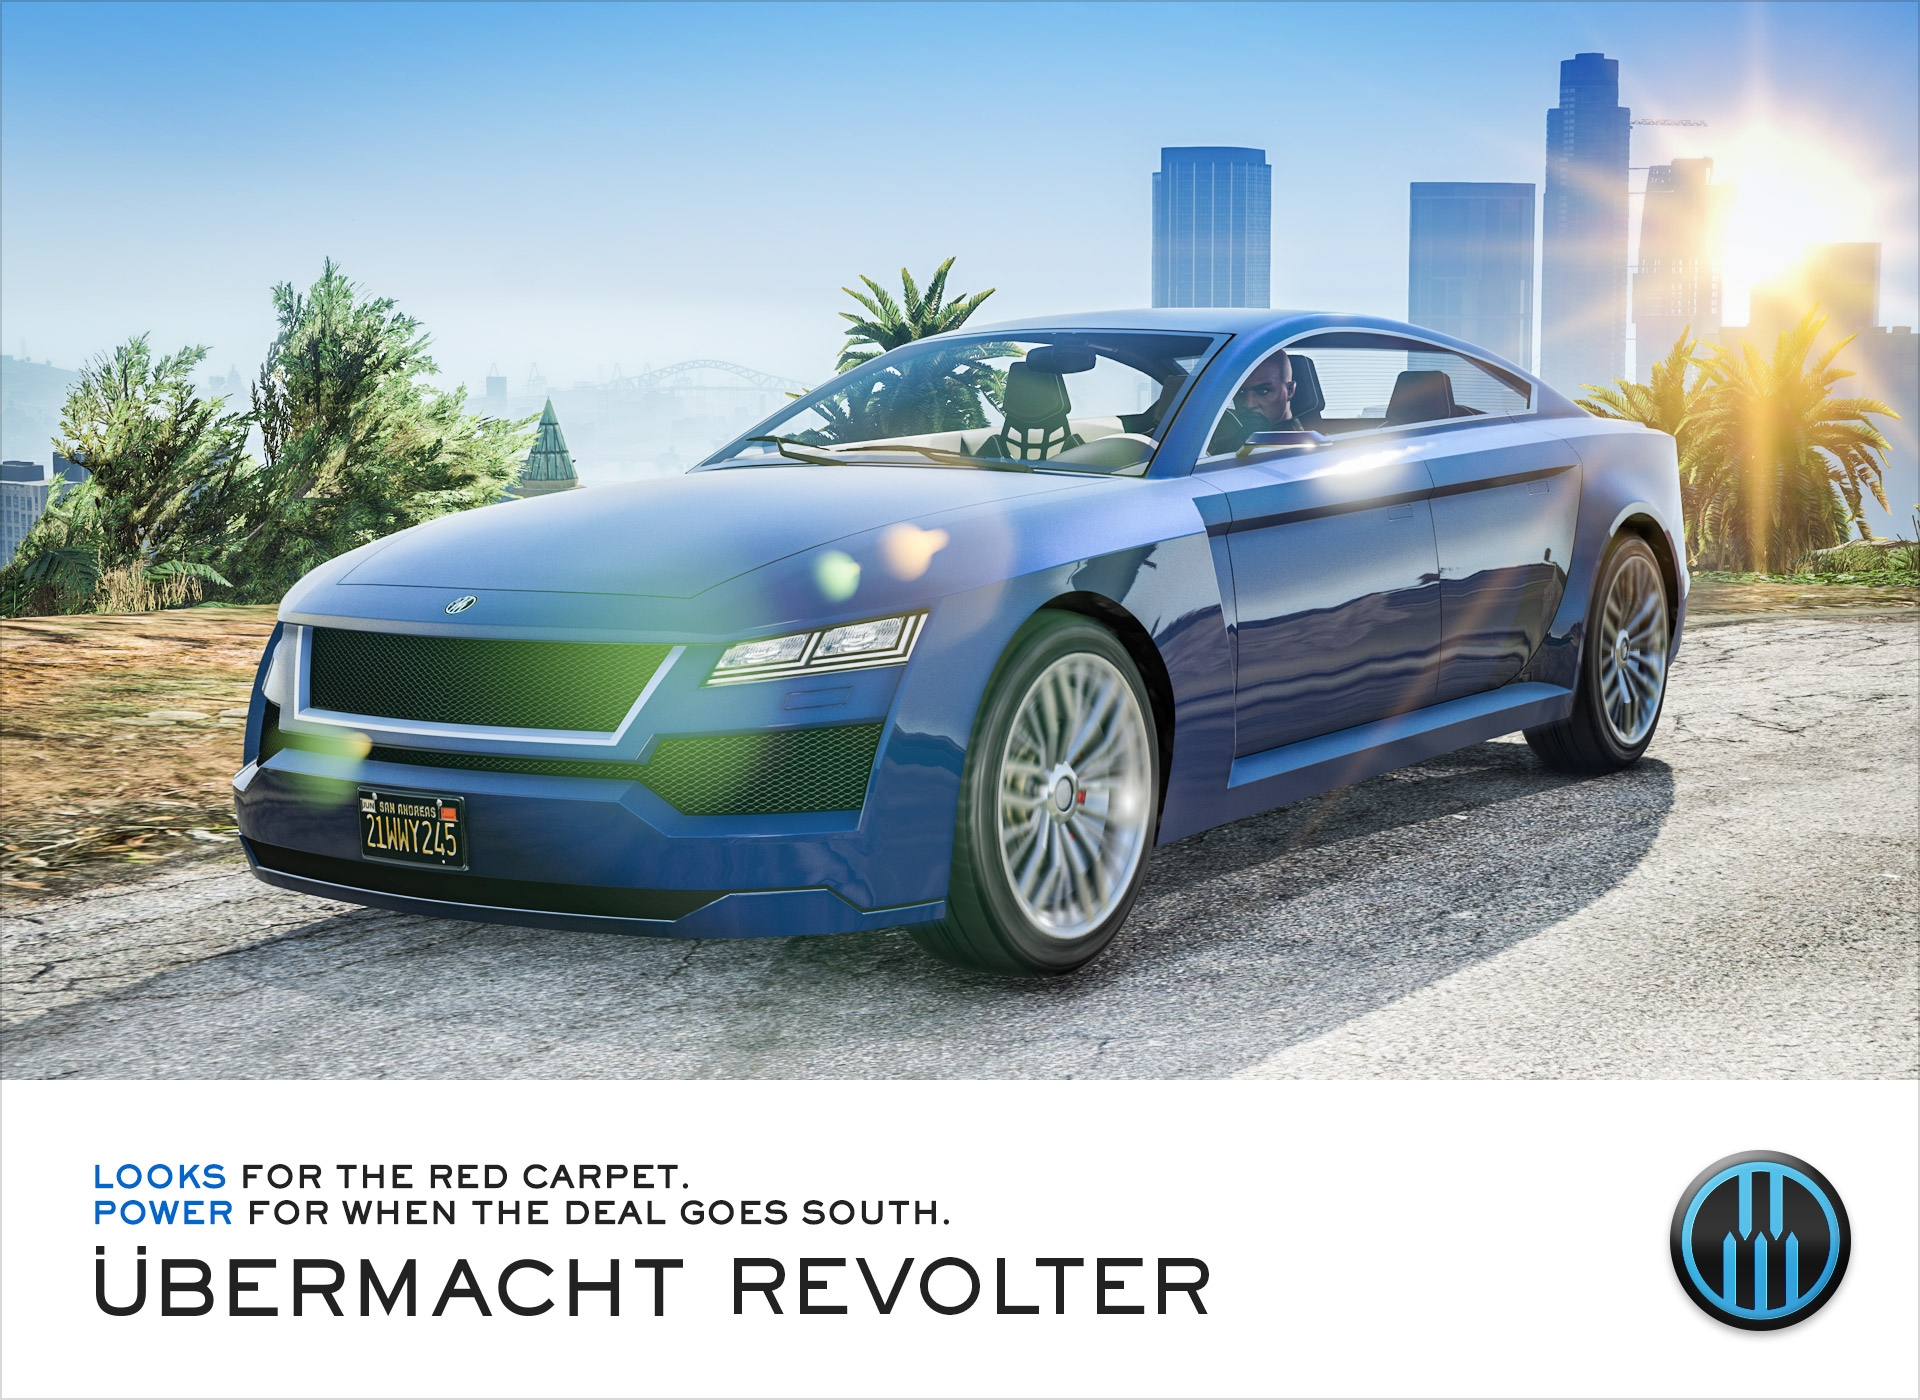 GTA Online: UBERMACHT REVOLTER now available